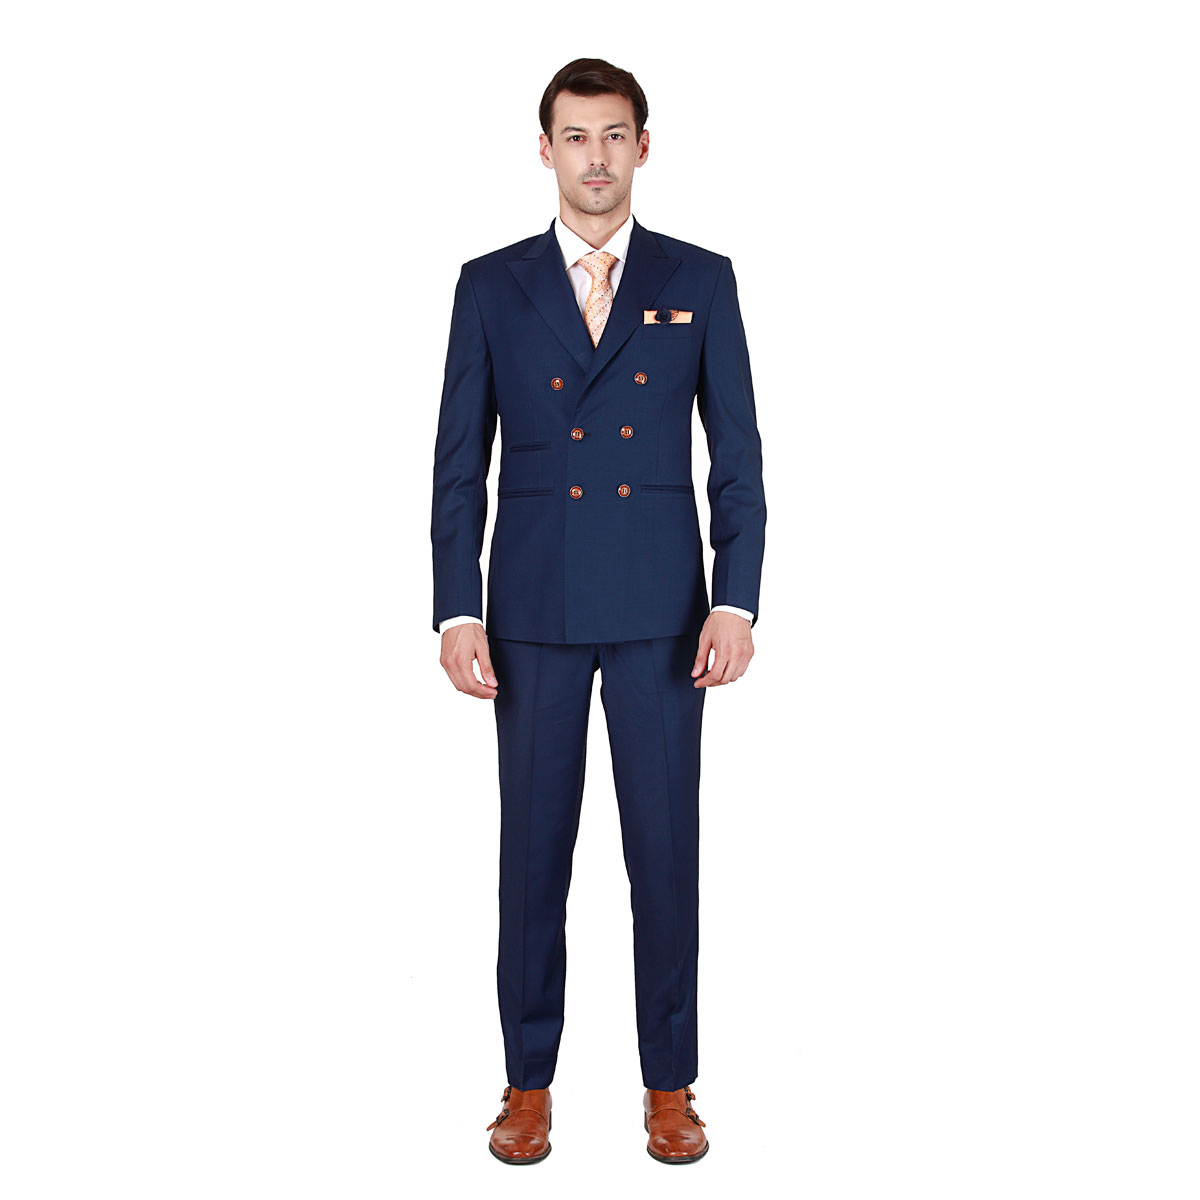 Dream & Dare Blue Suit - Premium Bespoke Suits Online. Men's ...